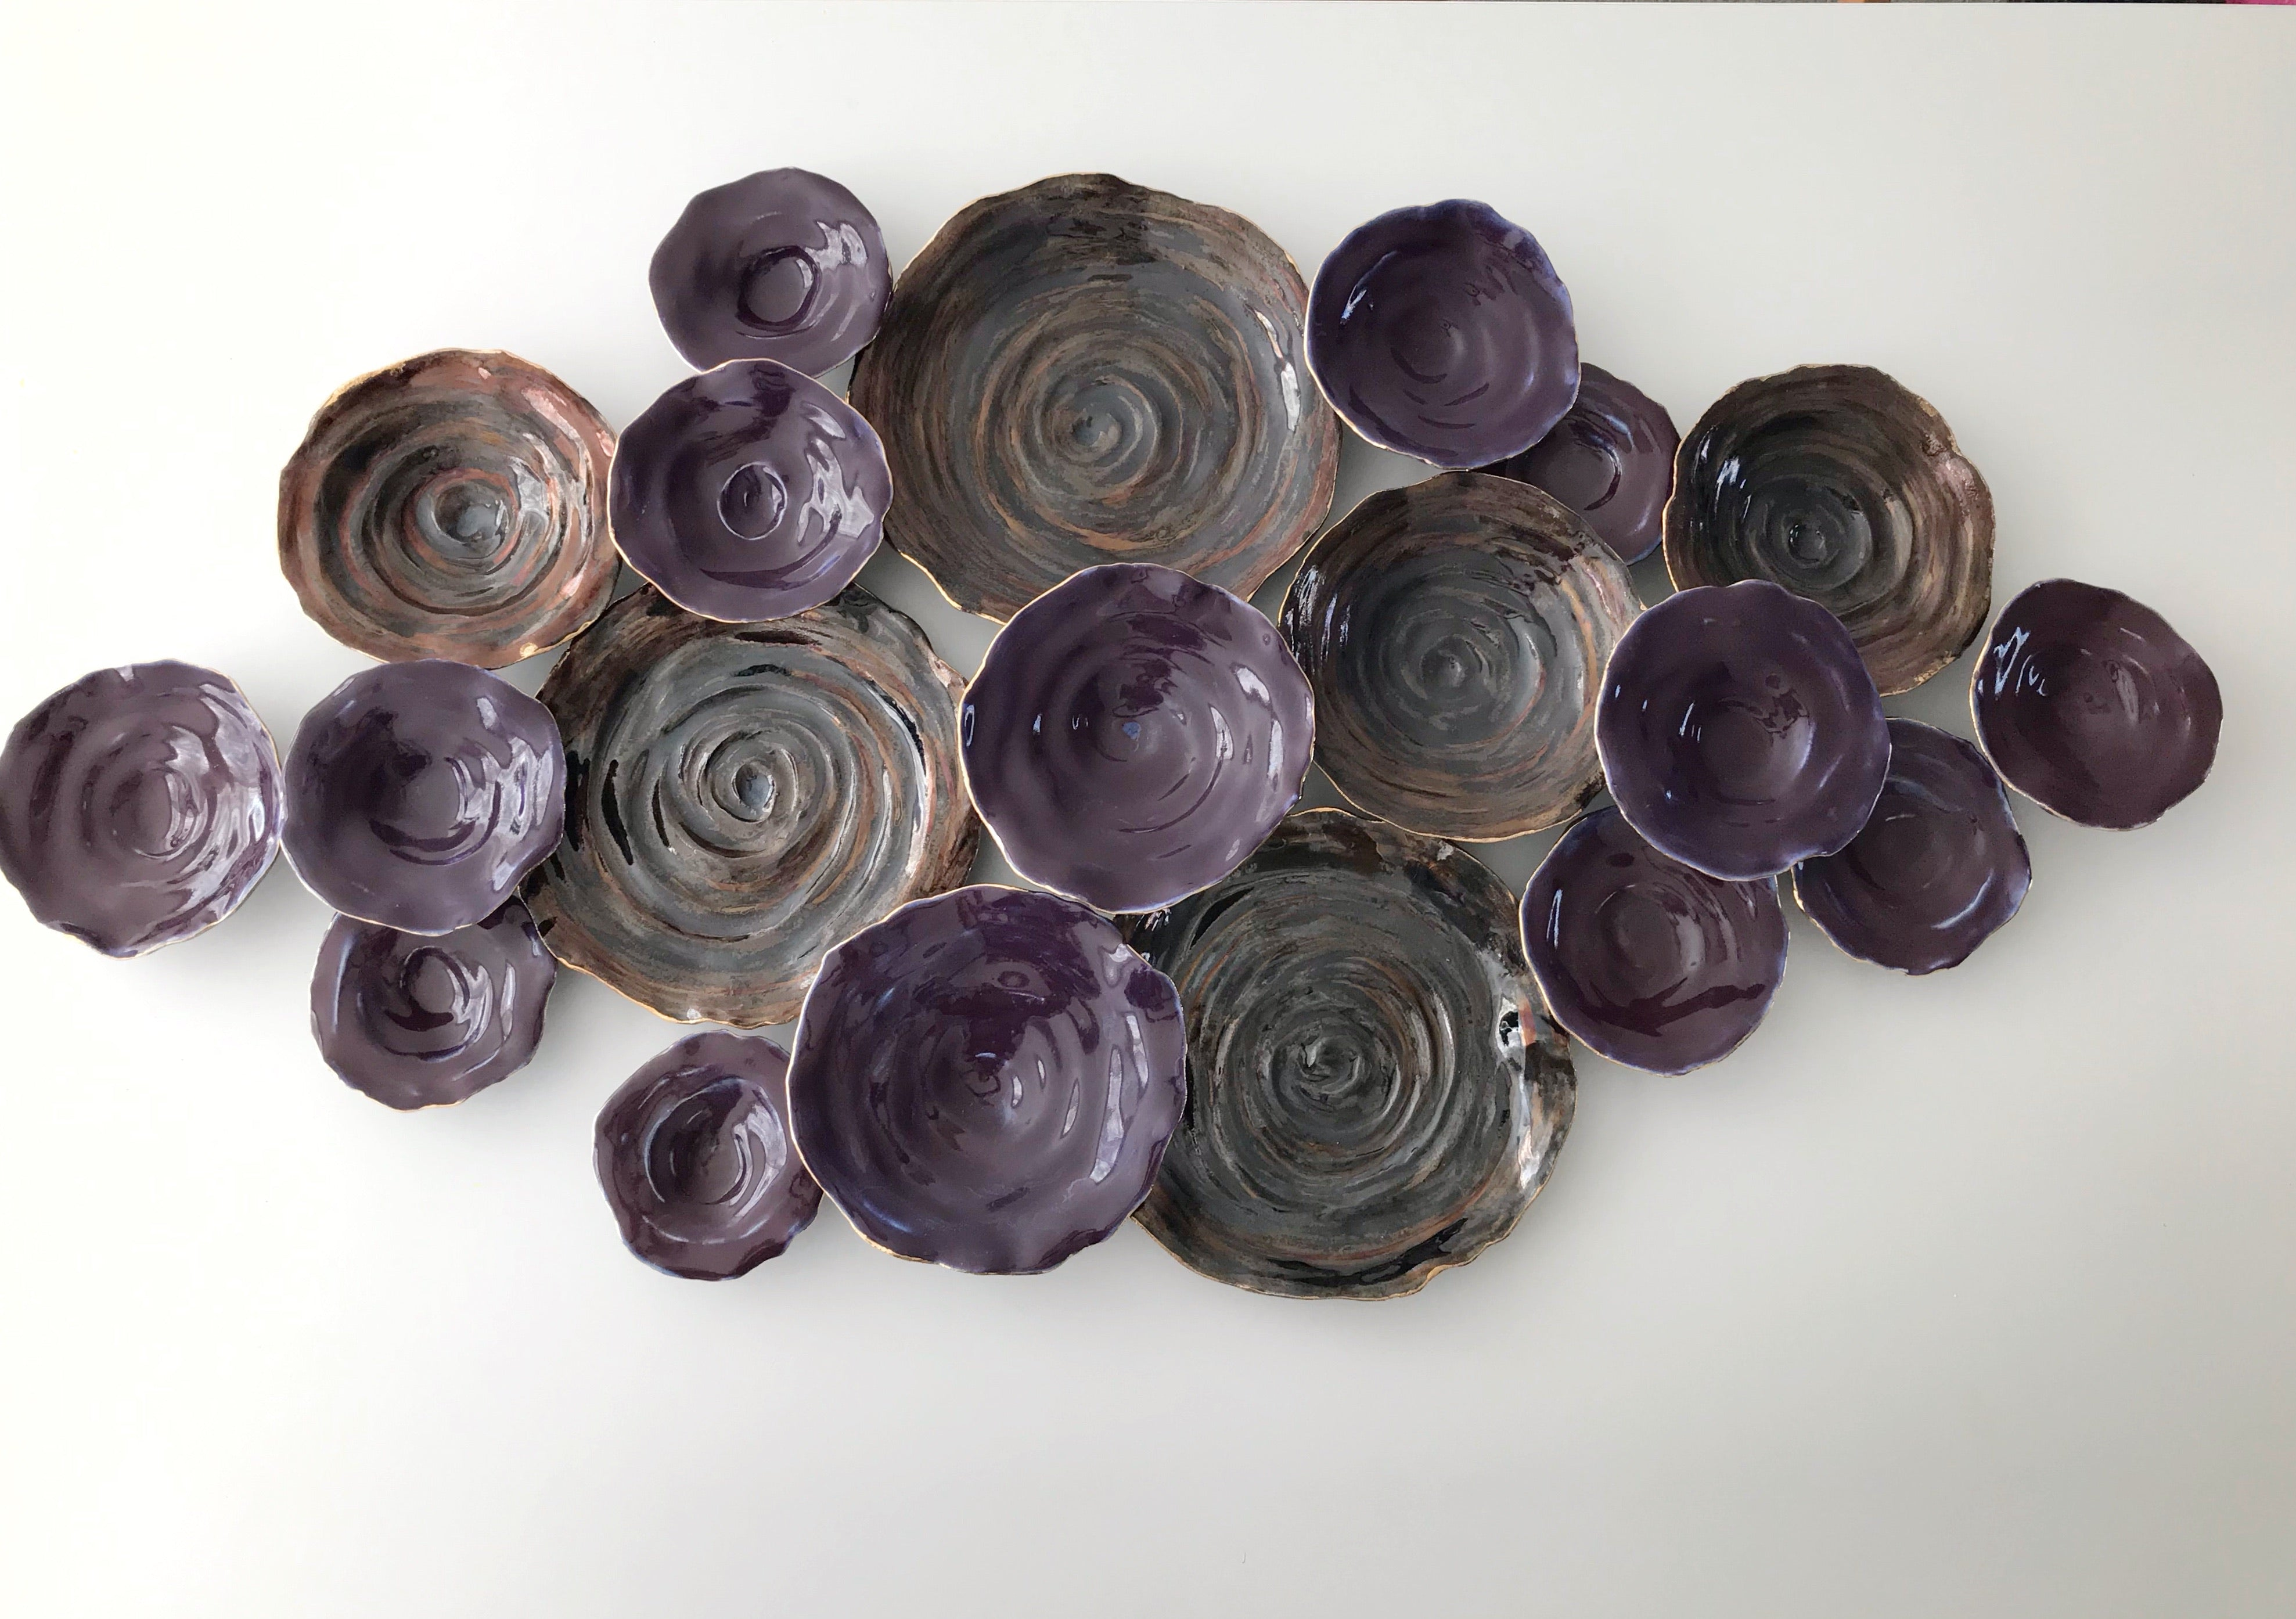 Ceramic Plate Wall Art, Discs Wall Sculpture Artwork